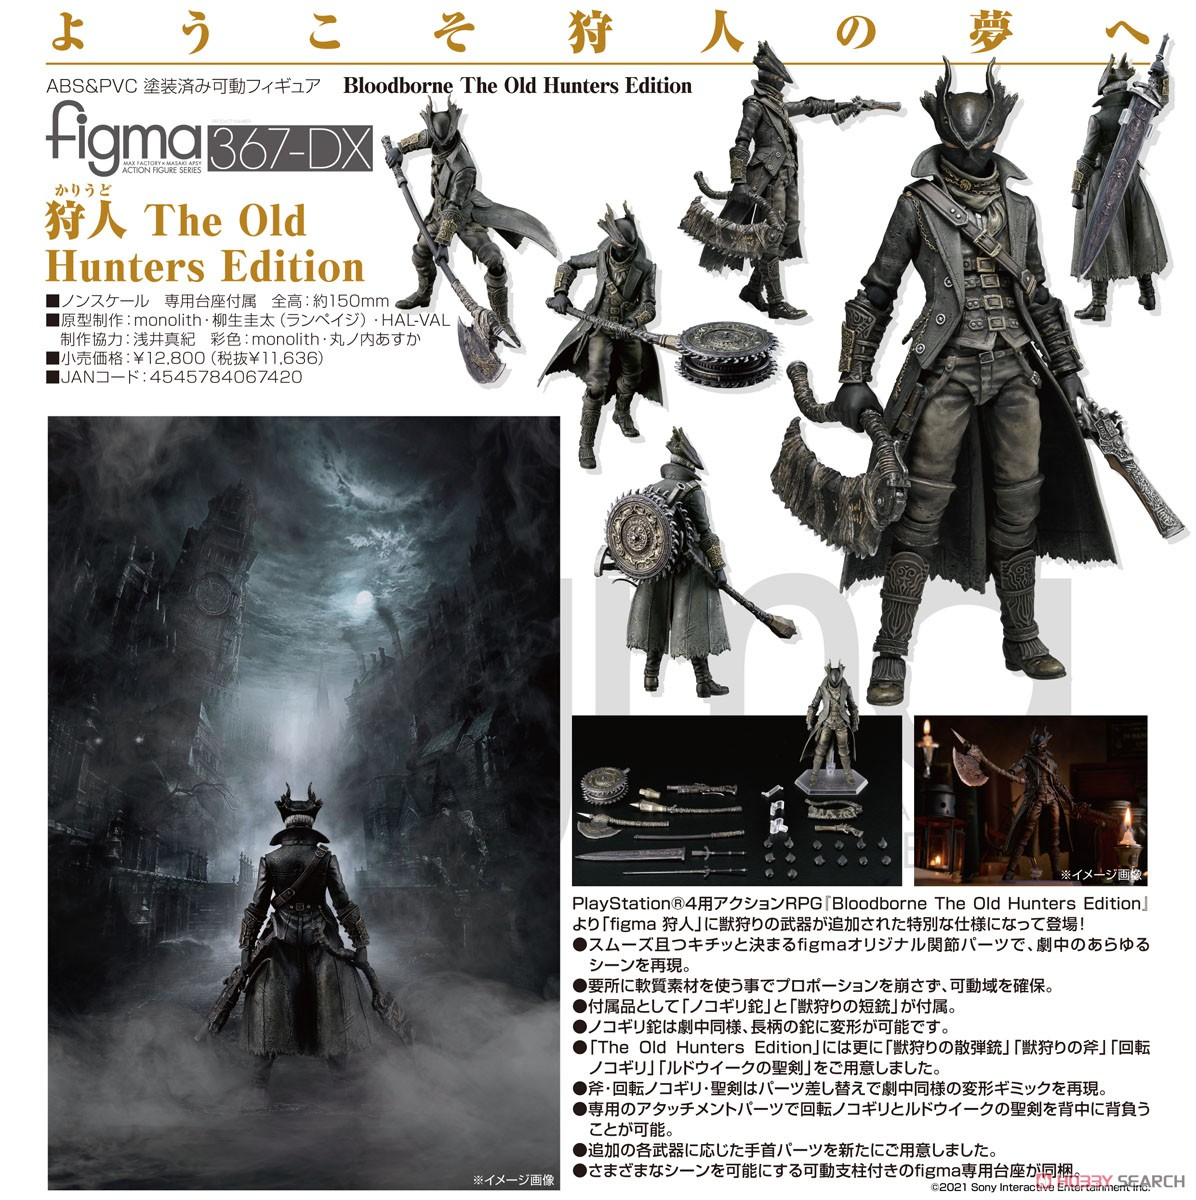 figma『狩人 The Old Hunters Edition』Bloodborne 可動フィギュア-015